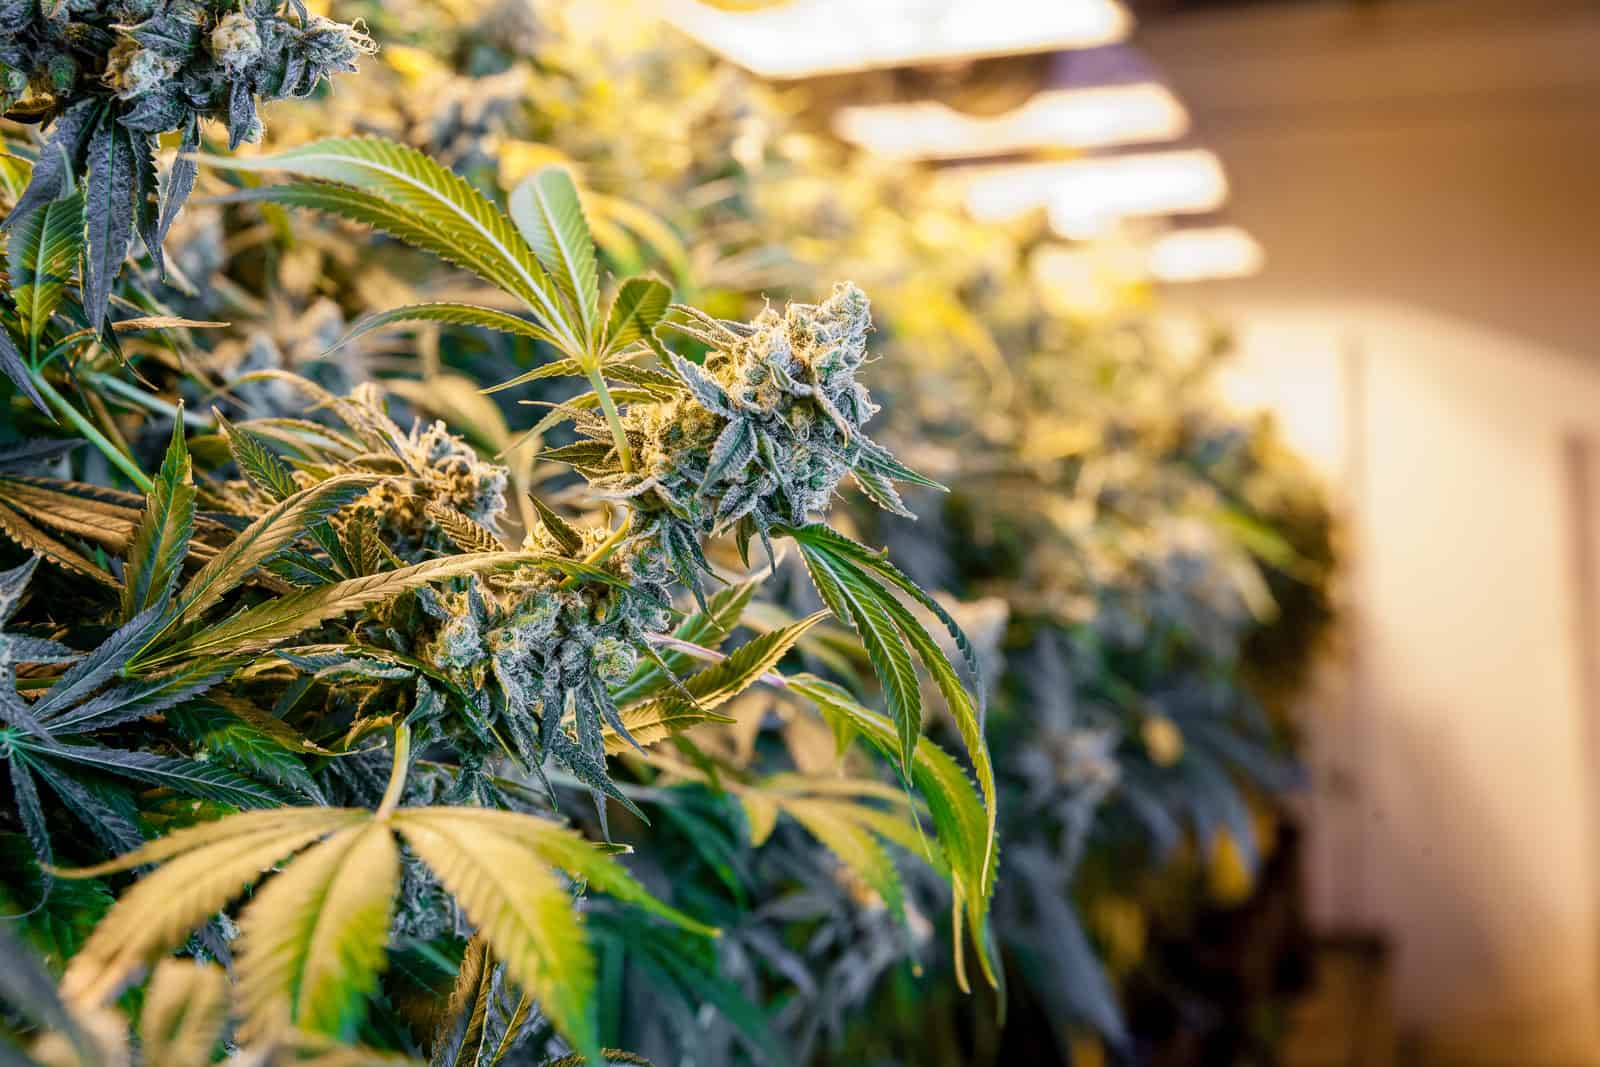 Top 5 Cannabis Grow Lights: Fluorescent, LED, and HID. Closeup of cannabis plants under lights.